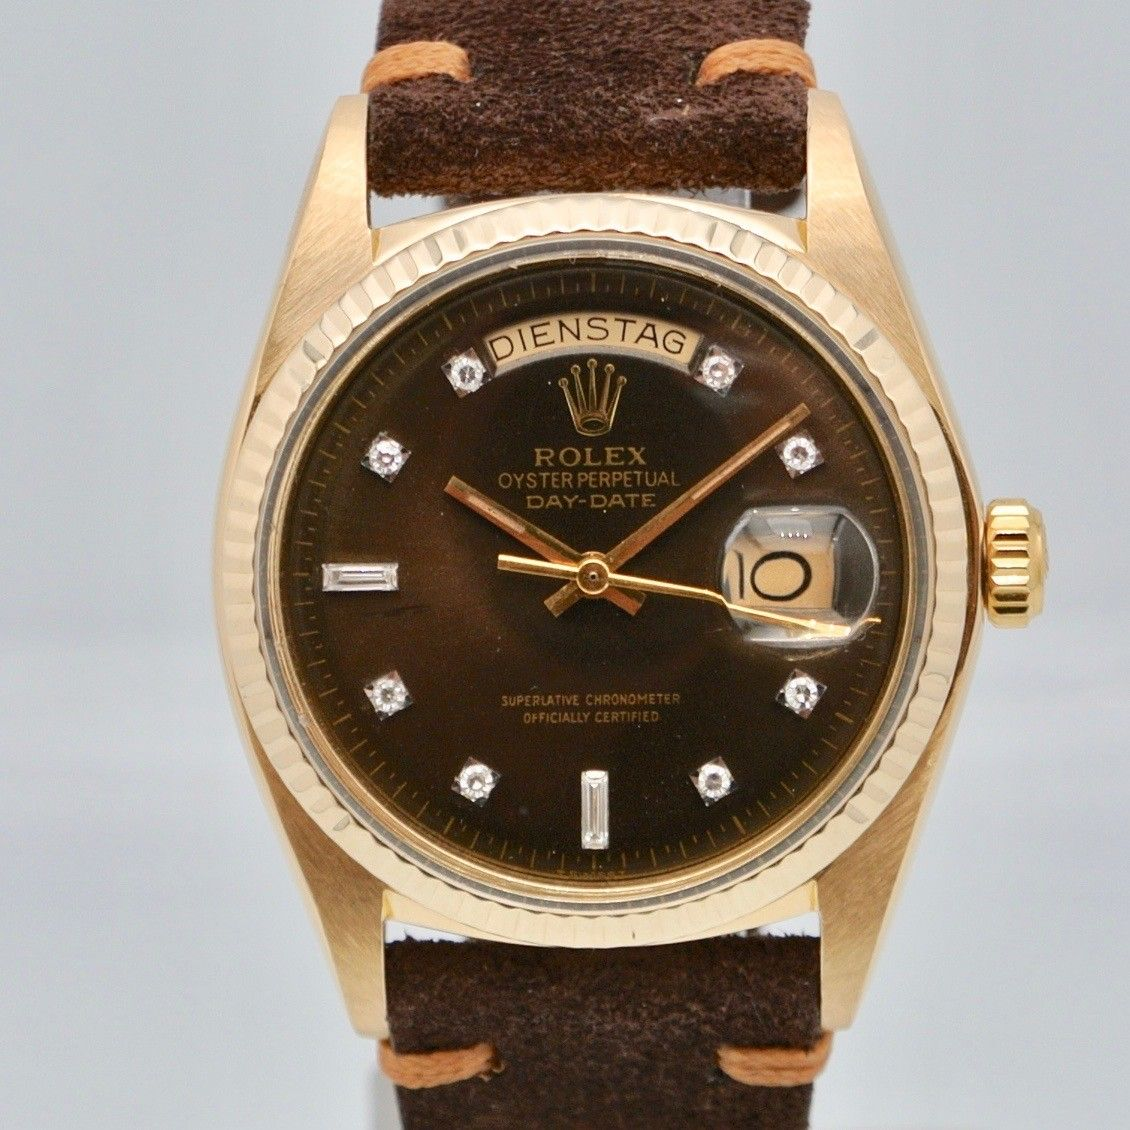 Rolex Day-Date 36 yellow gold diamond dial